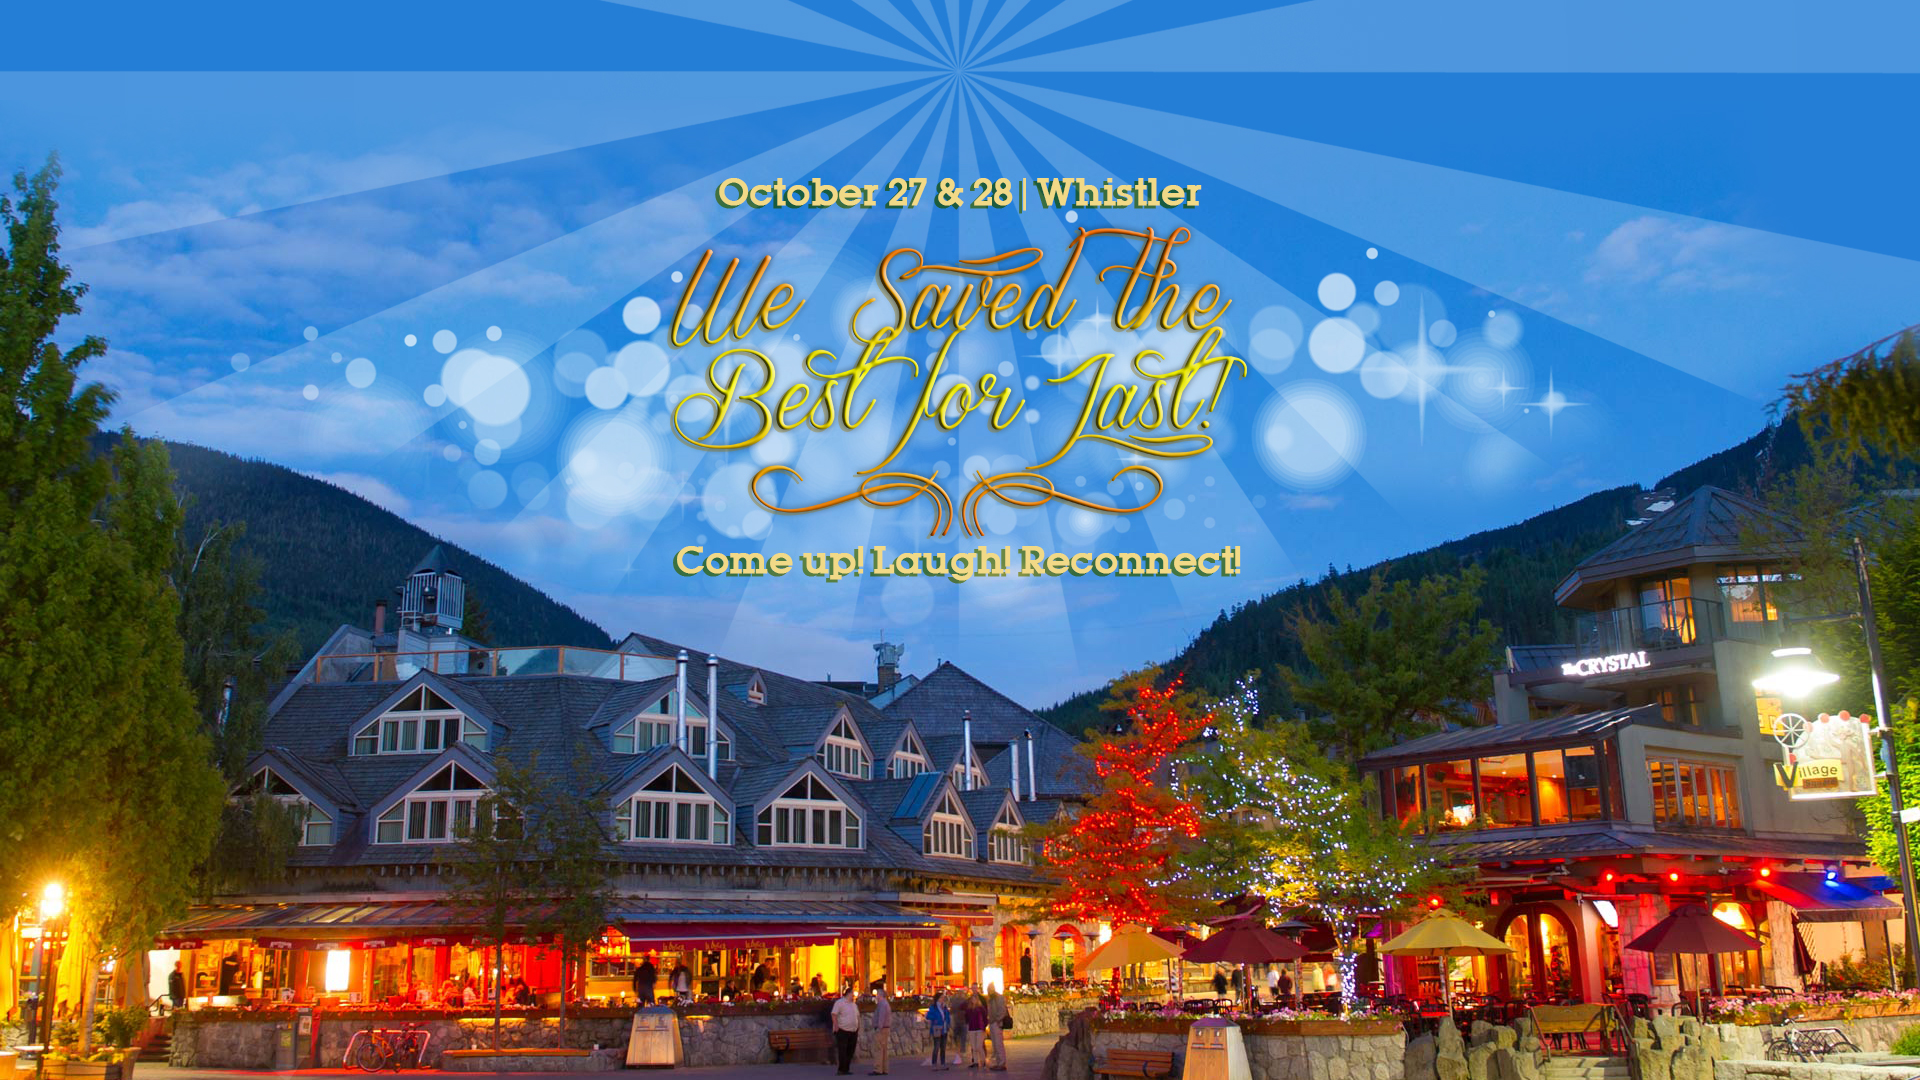 "Photo of Whistler town site with the words ""We Saved the Best for Last!"" above it."